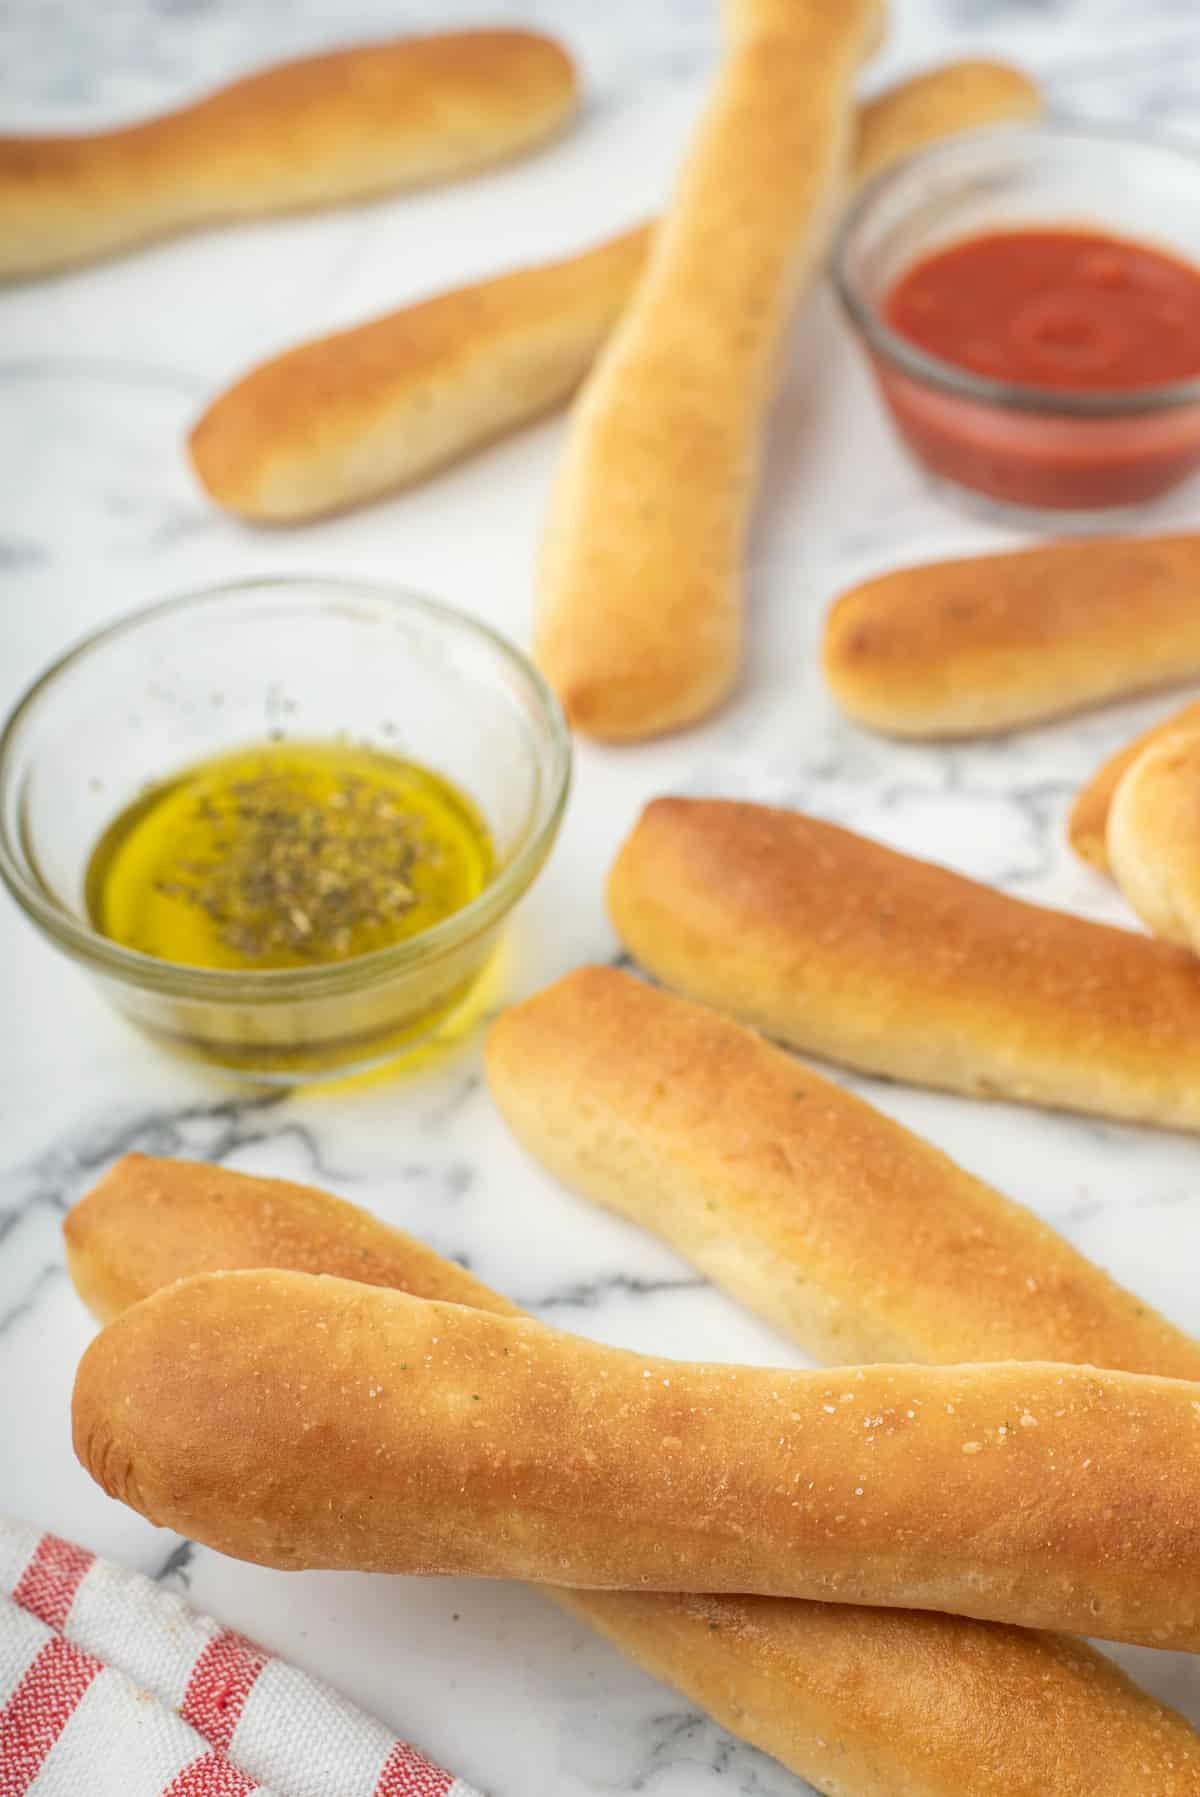 Marble counter with breadsticks laying on top with small bowls of marinara and oil.